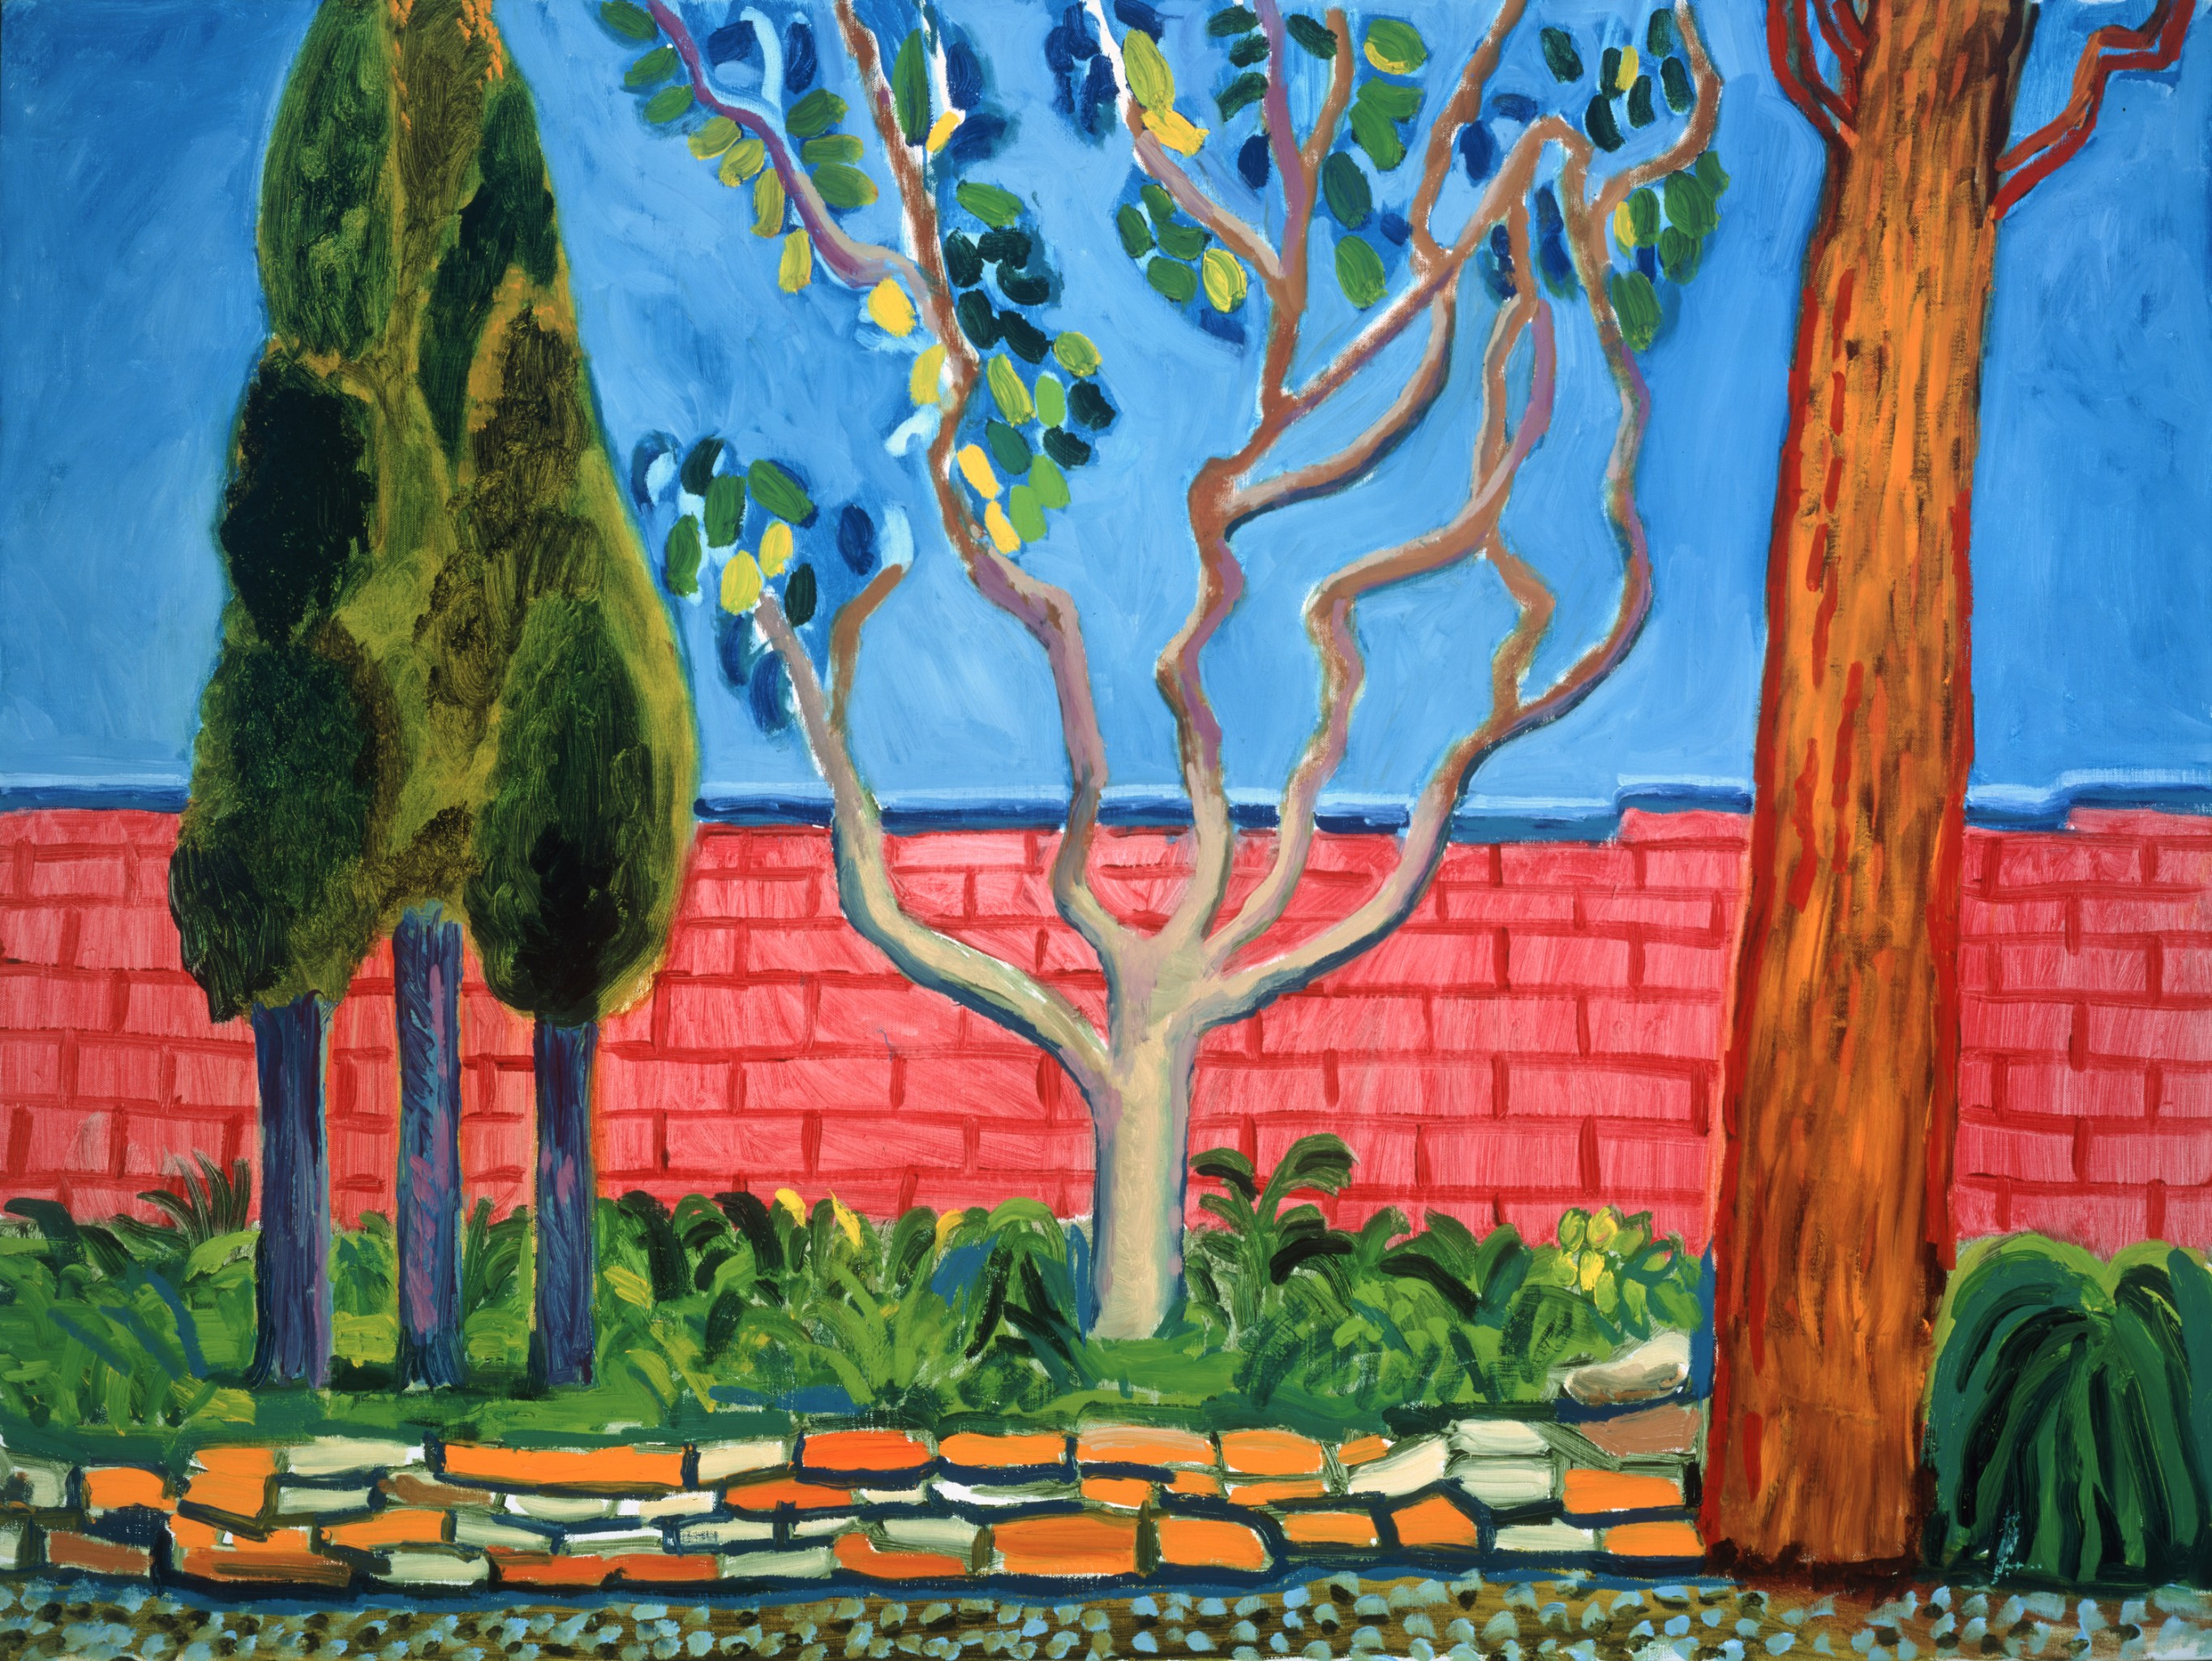 Favori David Hockney | Art Basel CA64